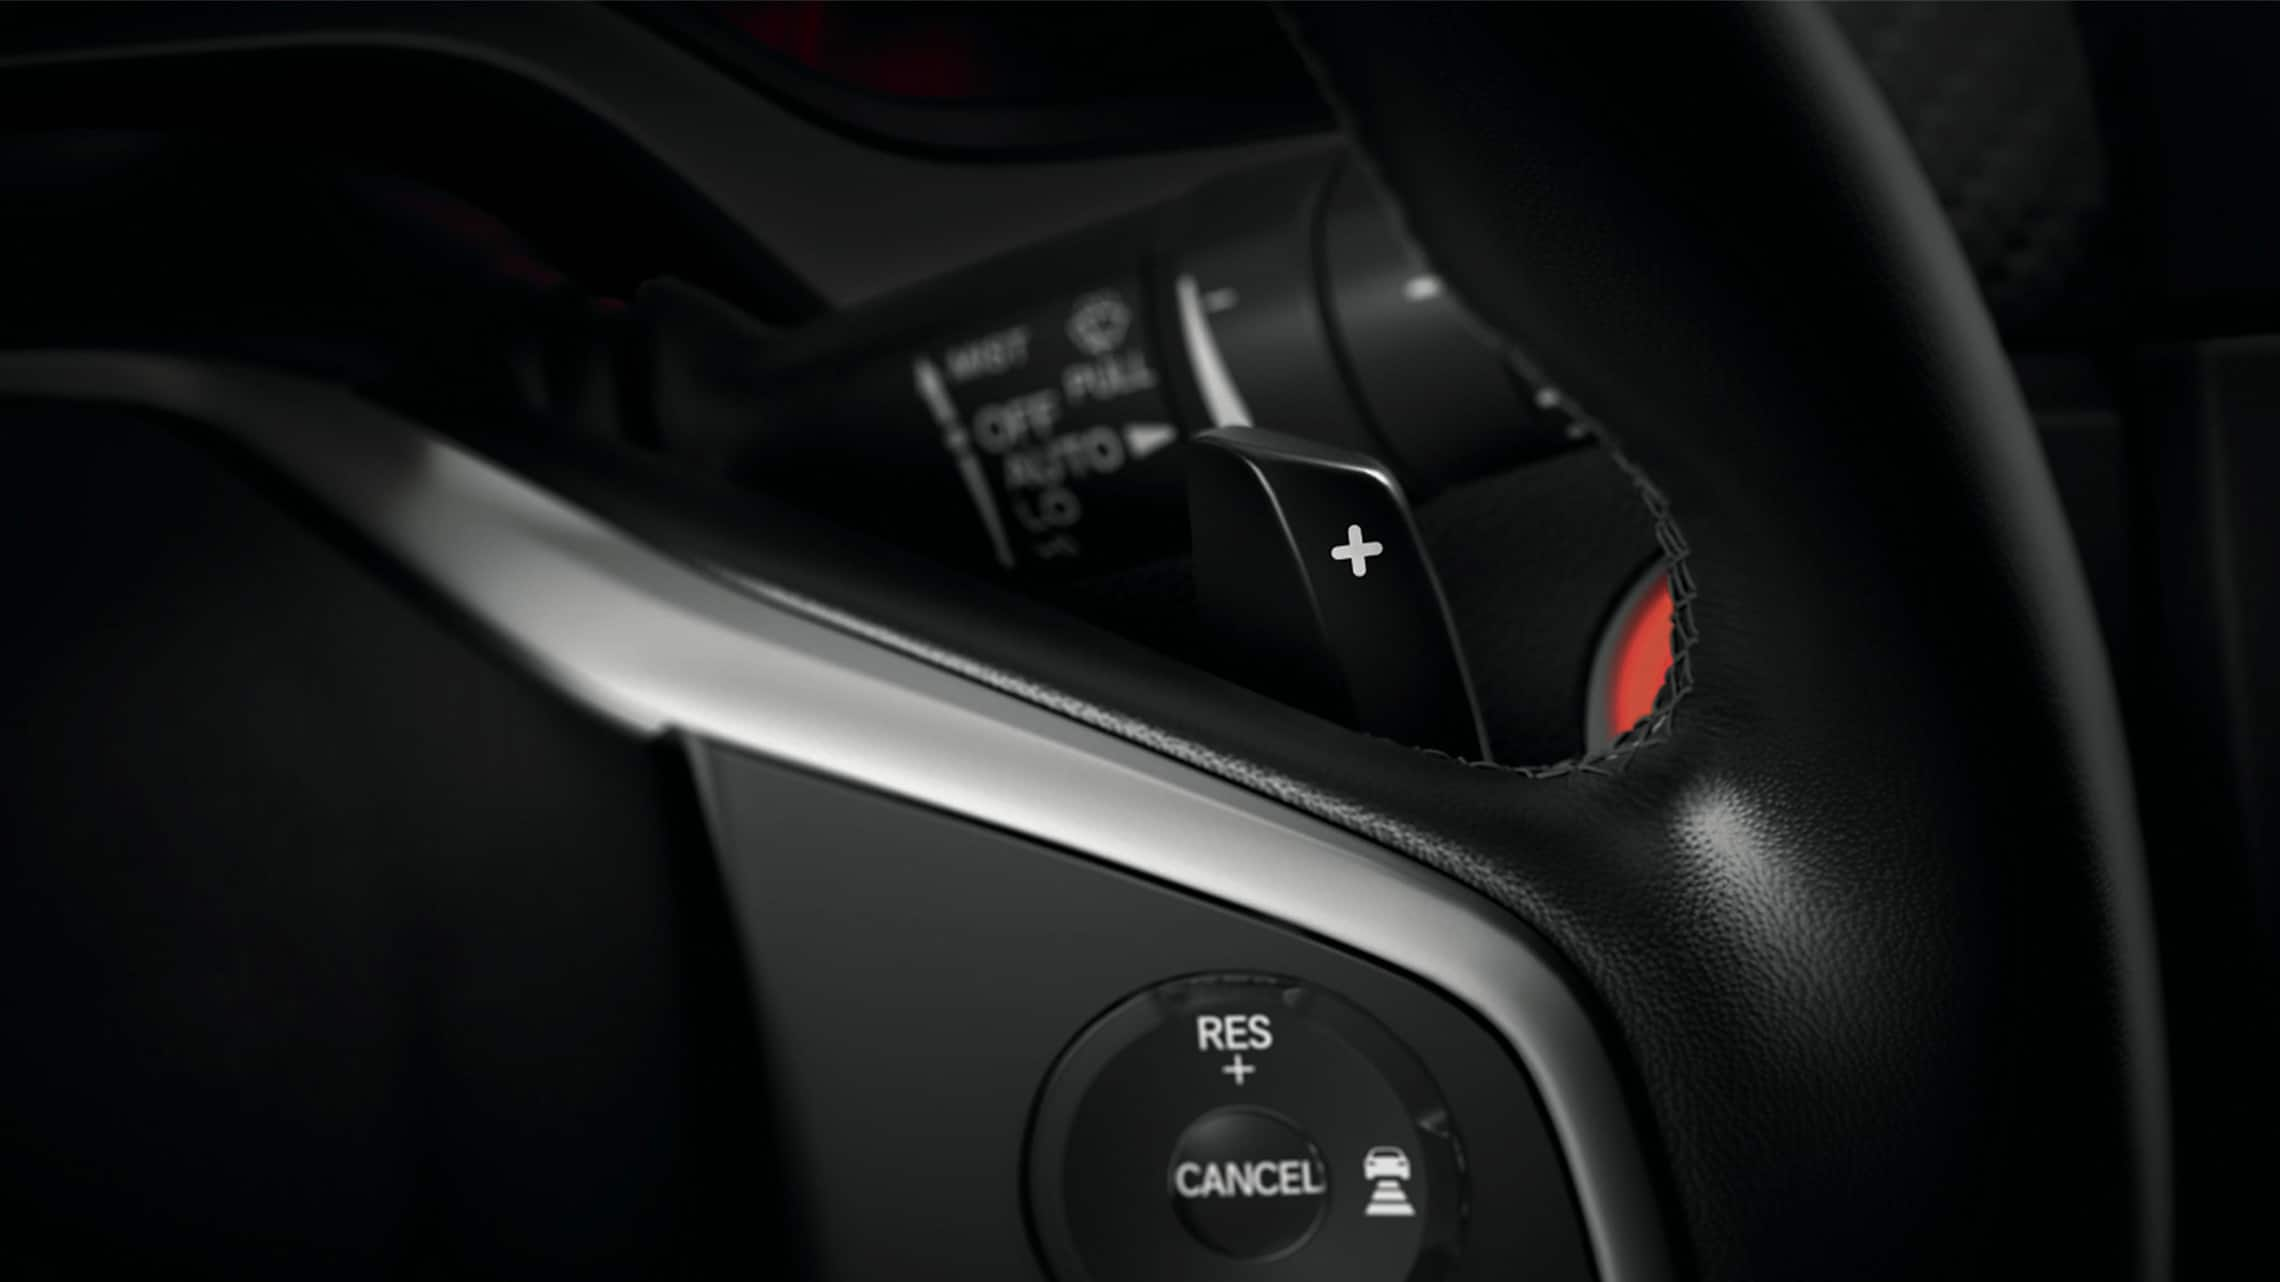 Steering wheel-mounted paddle shifter detail on 2020 Honda Civic Sport Touring Hatchback.